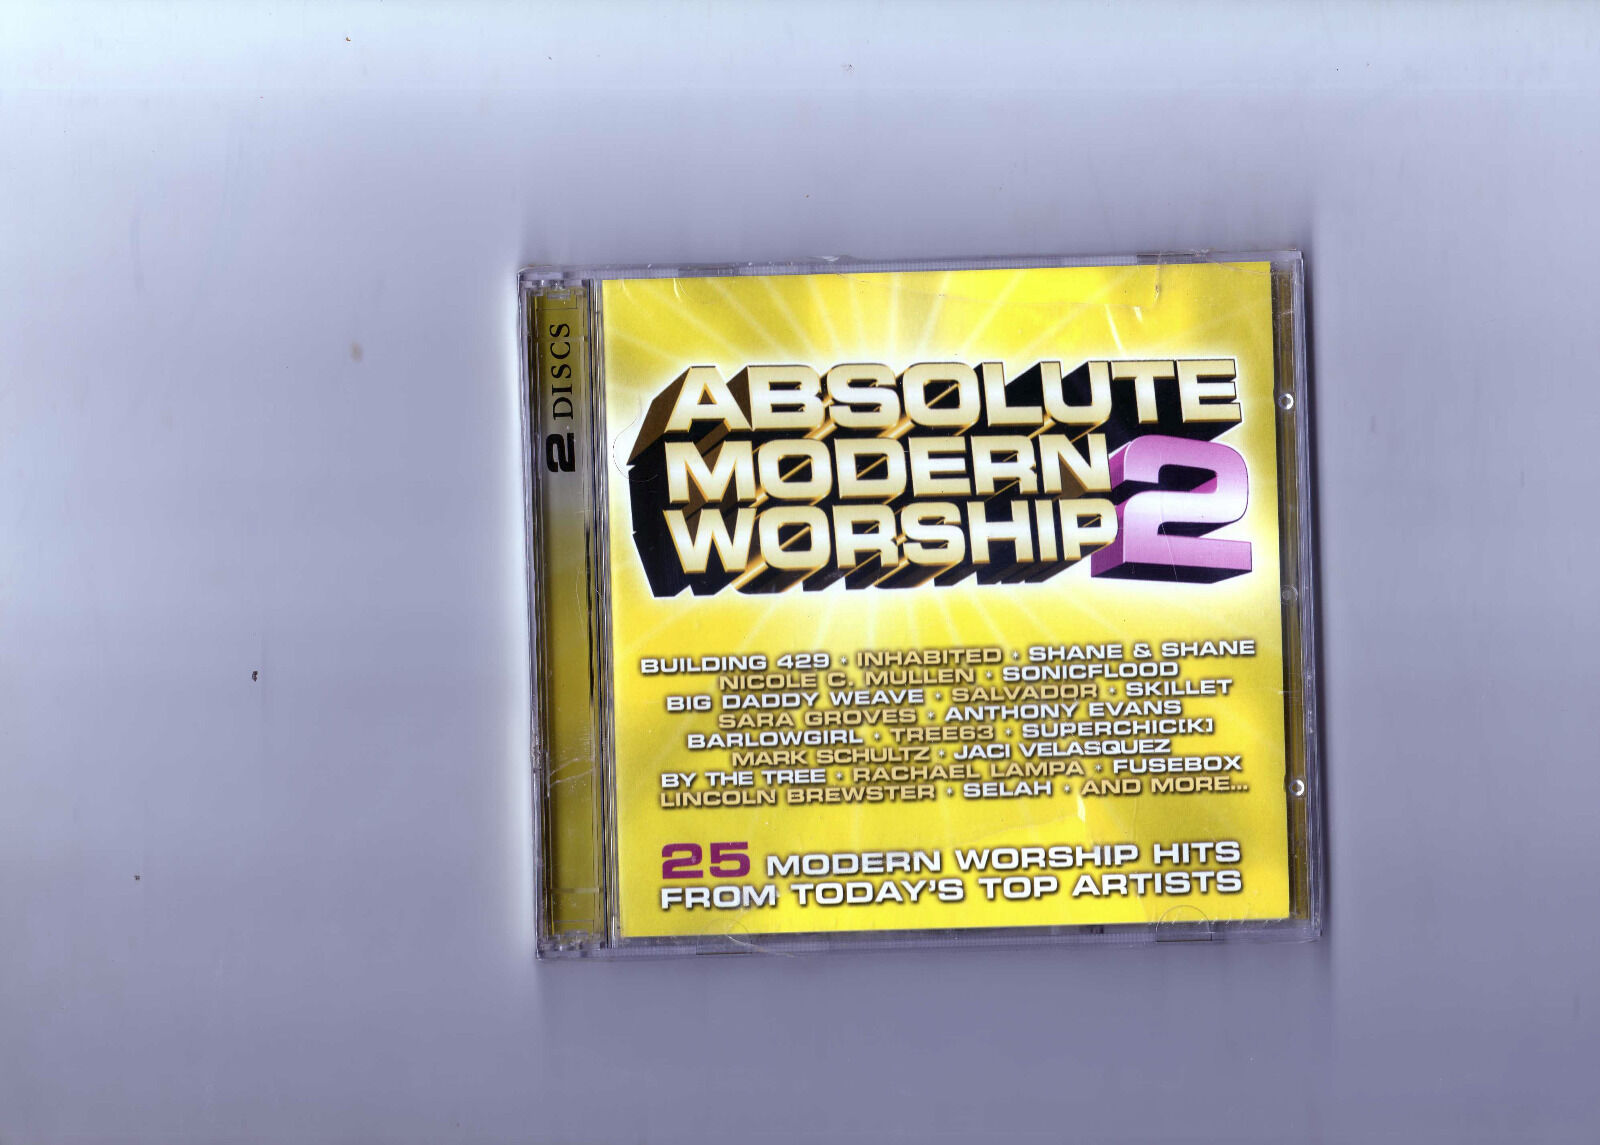 Absolute Modern Worship 2006 By Various Artists Cd Jan 3 Fuse Box Stock Photo